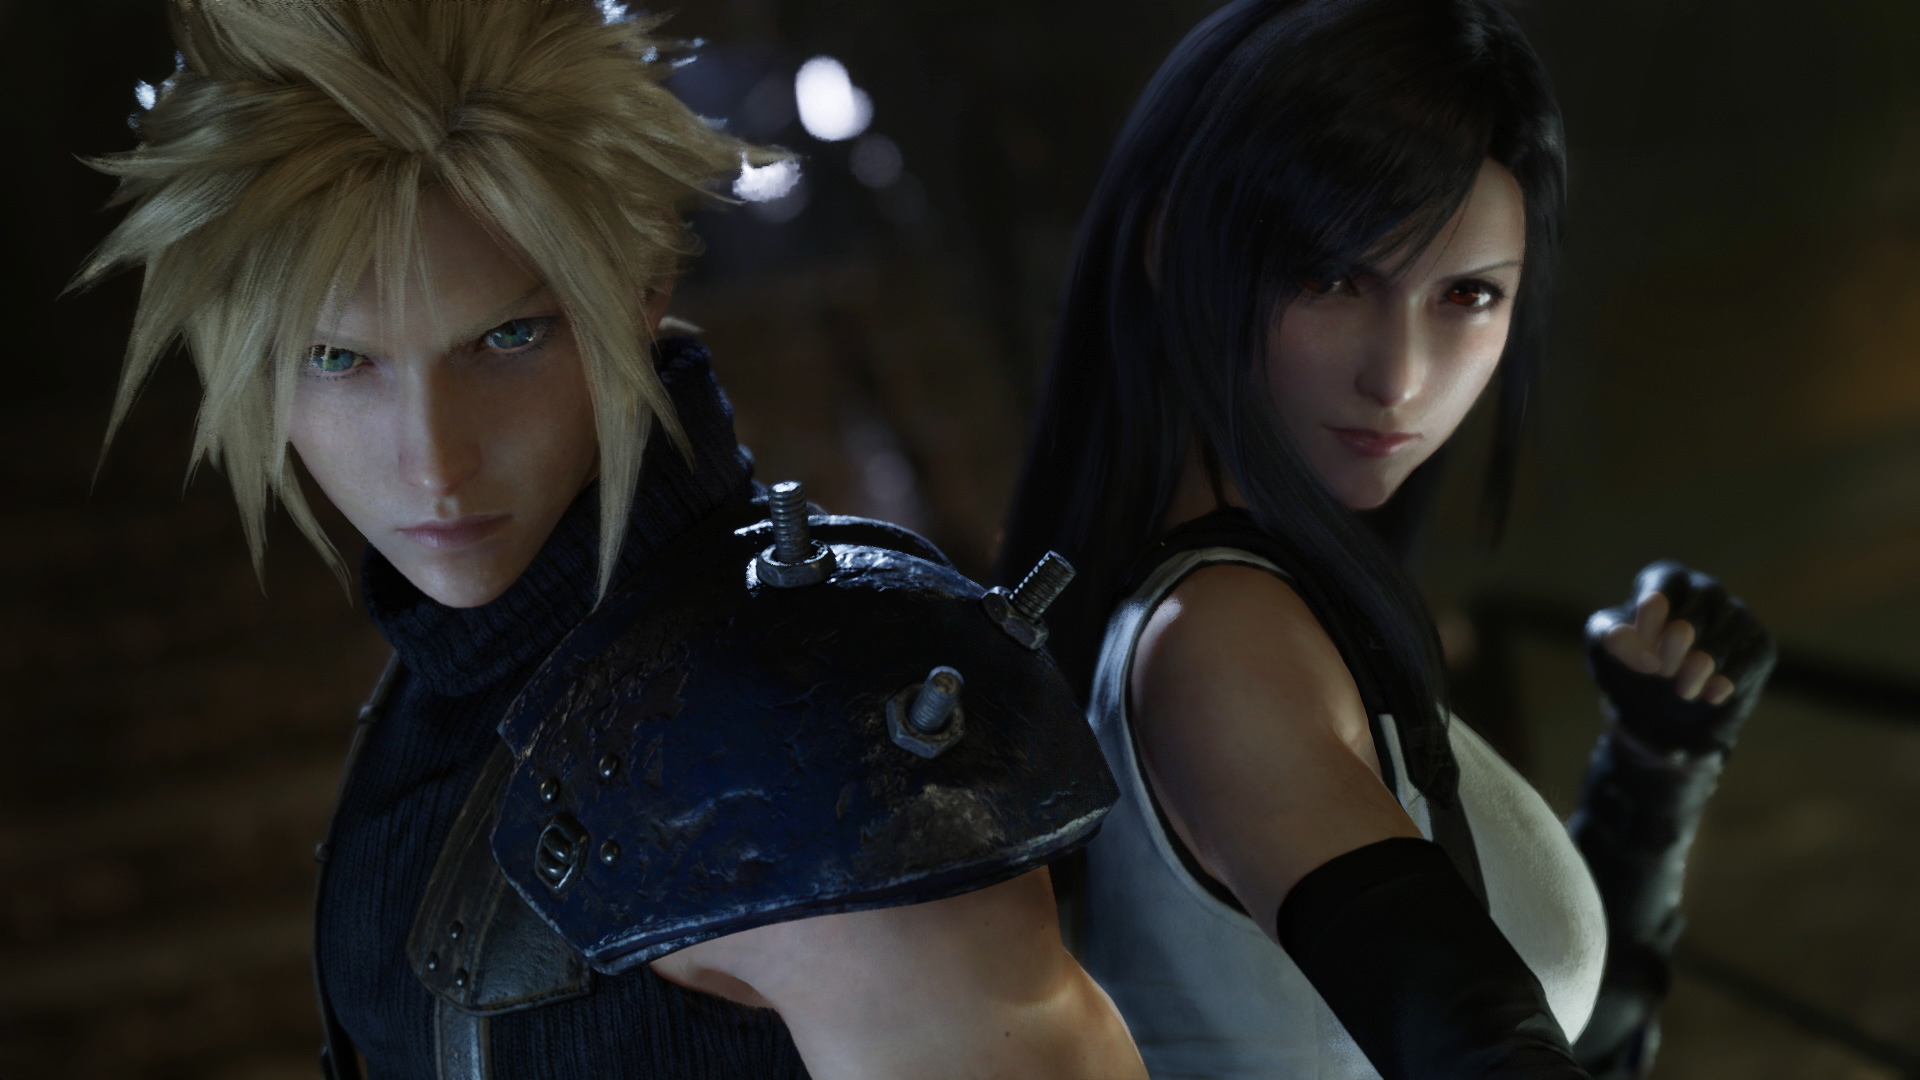 Final Fantasy 7 Remake PC Code and PS5 Resolution